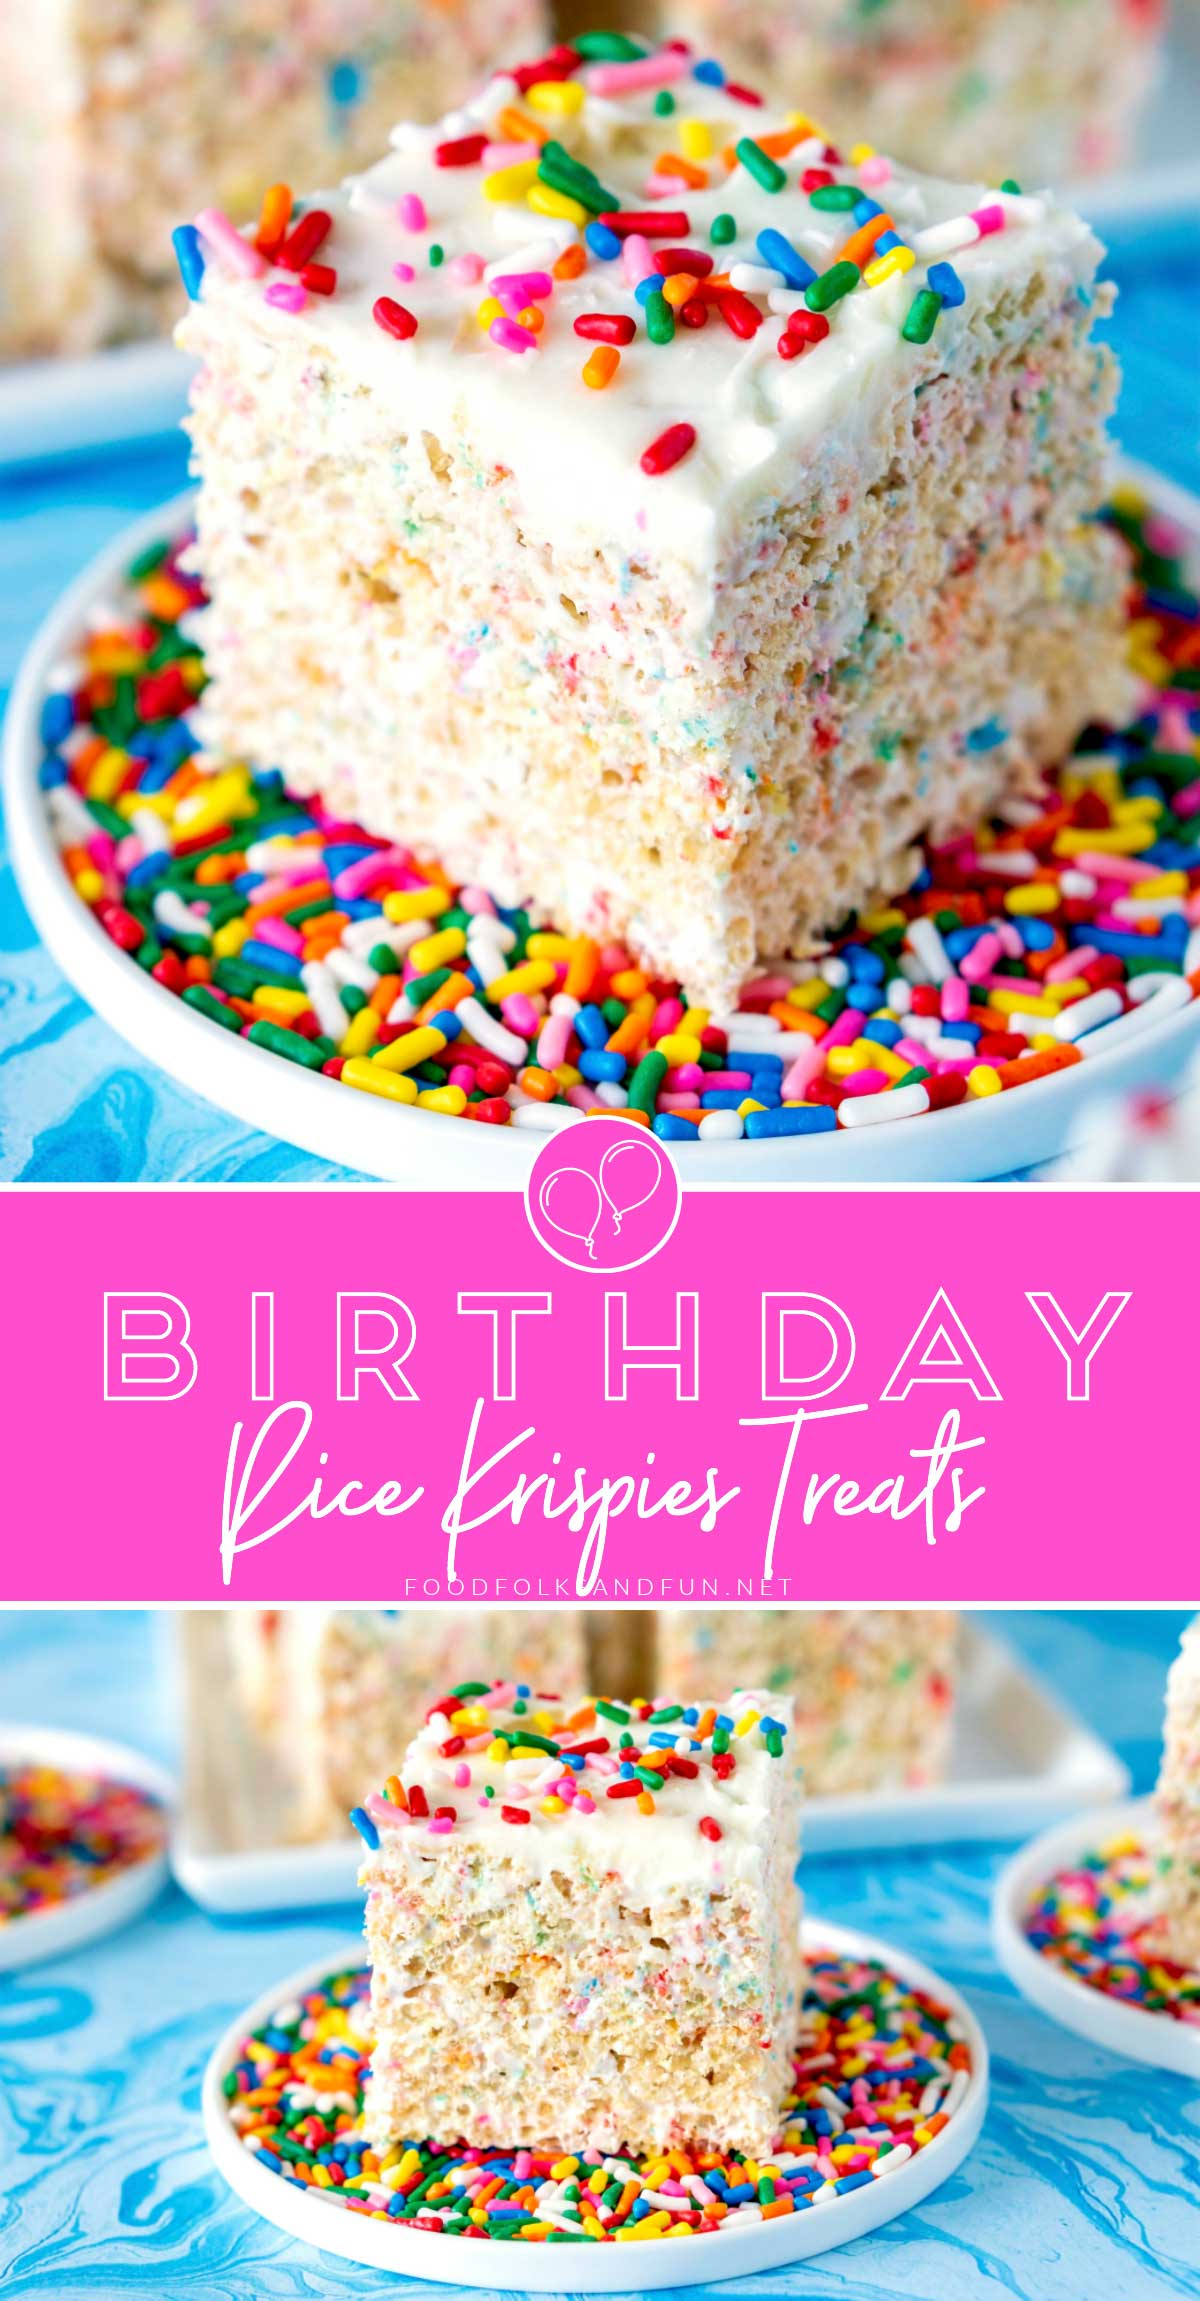 This Birthday Rice Krispies Treats recipe is made with loads of marshmallows, sprinkles, and frosting! They're huge, gooey, and perfect for birthdays! #Birthday #BirthdayTreat #BirthdayDessert #Dessert #BirthdayRecipe #DessertRecipe #RiceKrispiesTreats #FoodFolksandFun via @foodfolksandfun